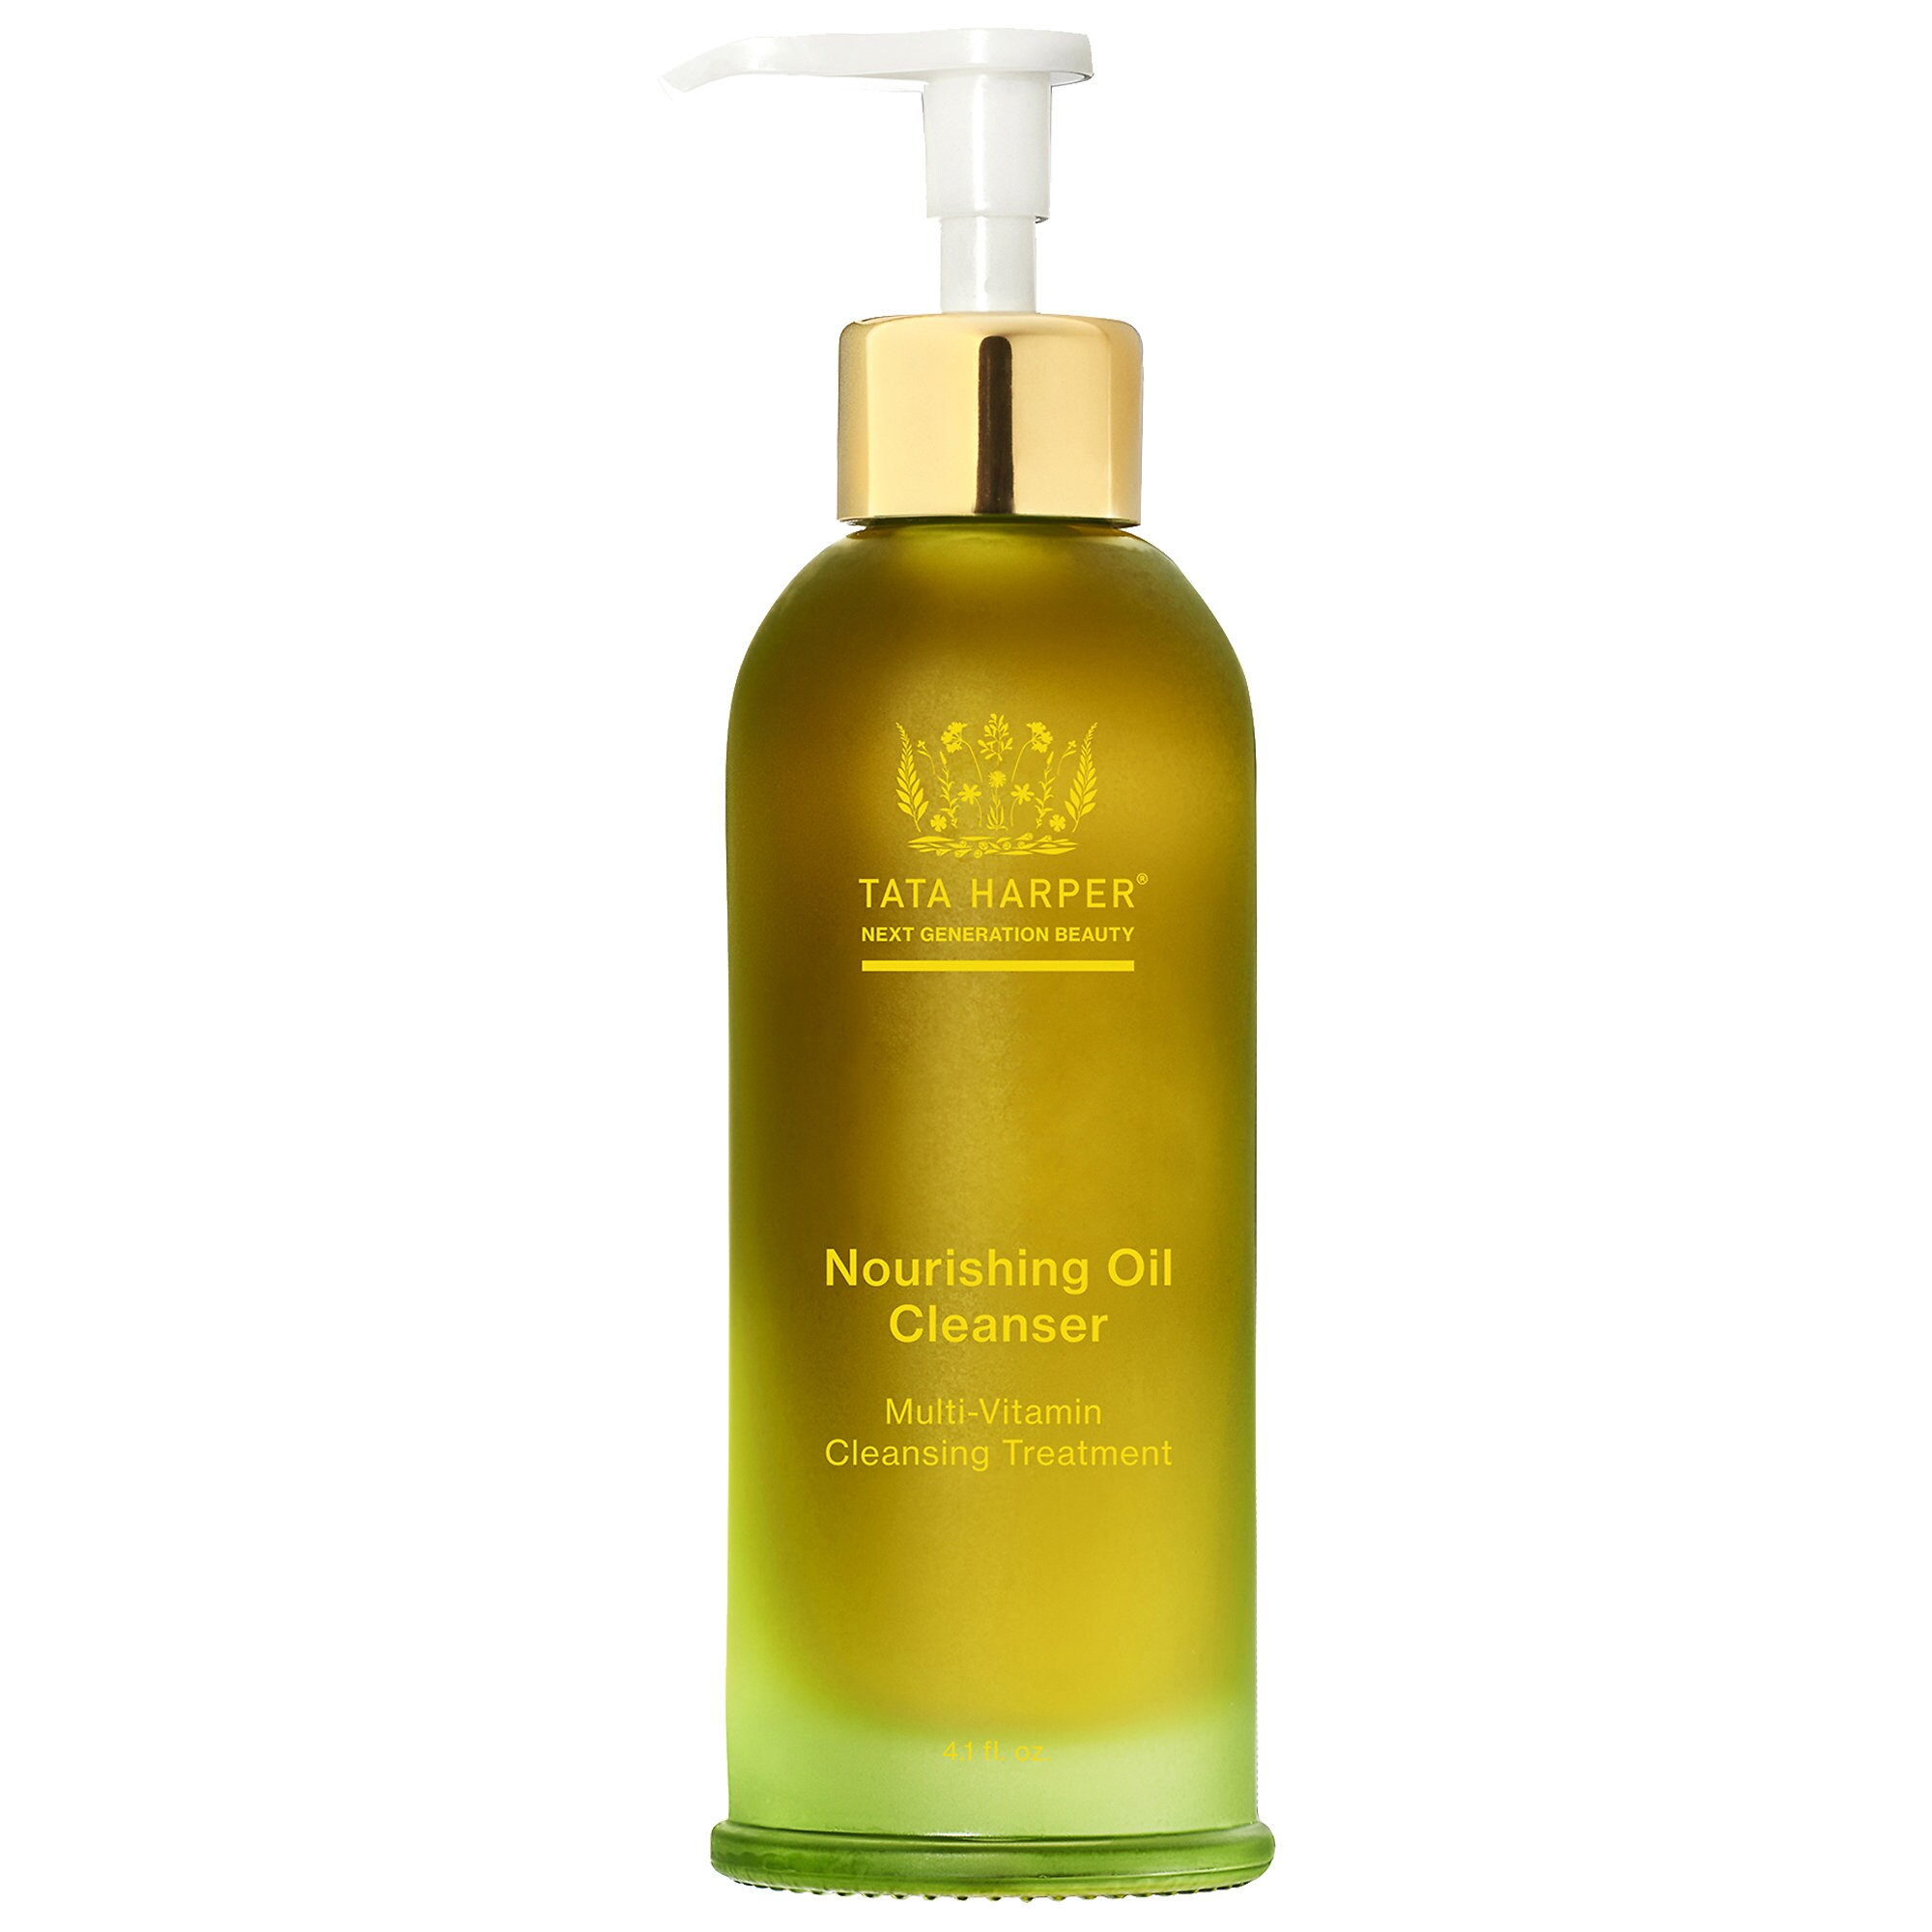 Tata Harper - Nourishing Makeup Removing Oil Cleanser